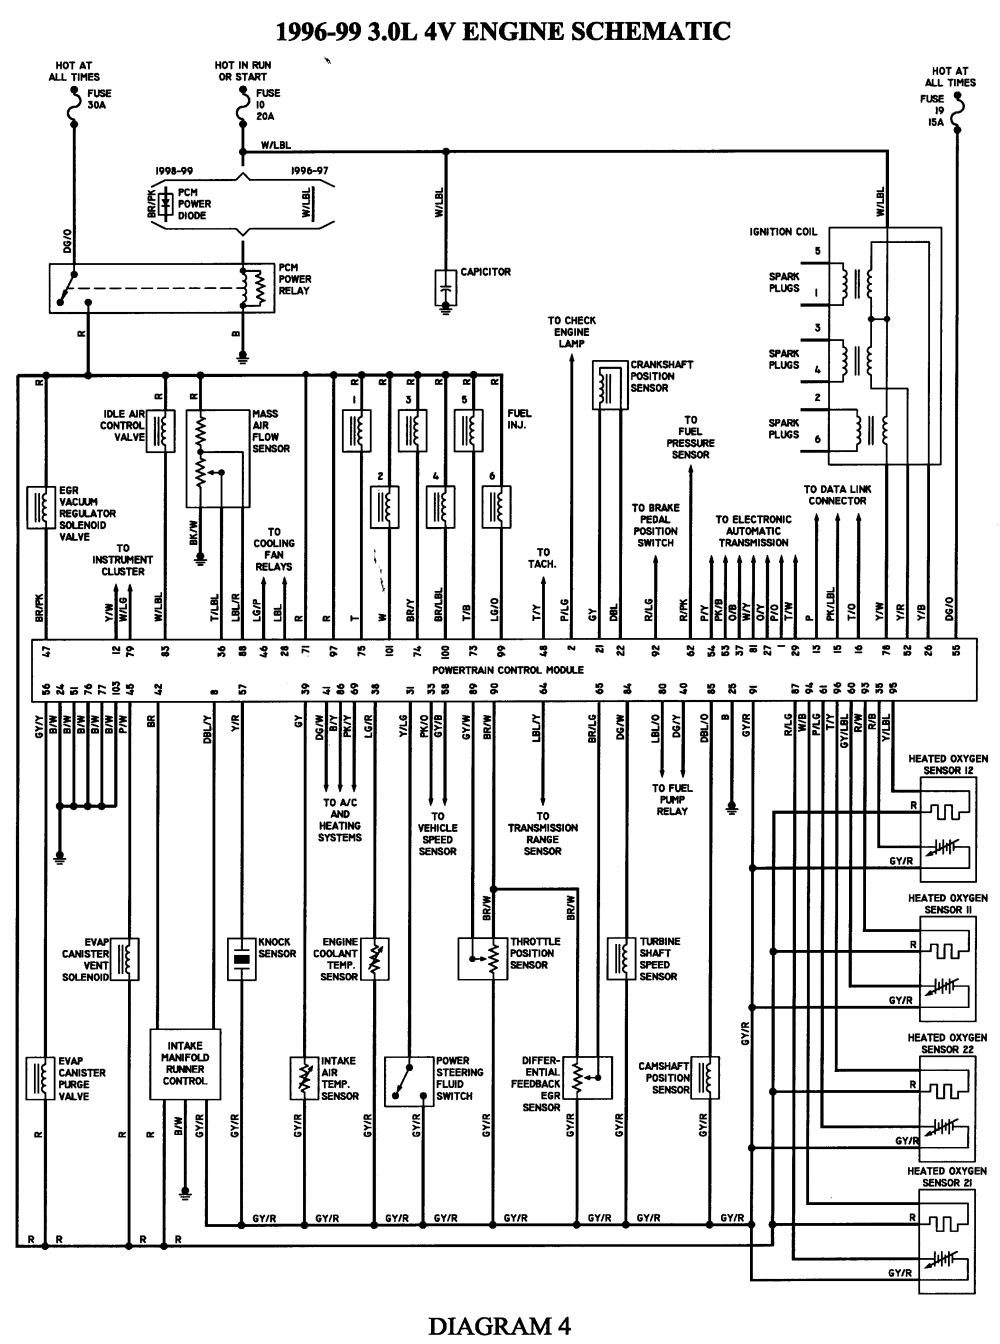 1999 ford taurus wiring diagram Download-1999 ford taurus wiring diagram Collection 1996 Ford Taurus Wiring Diagram 15 s 4-o